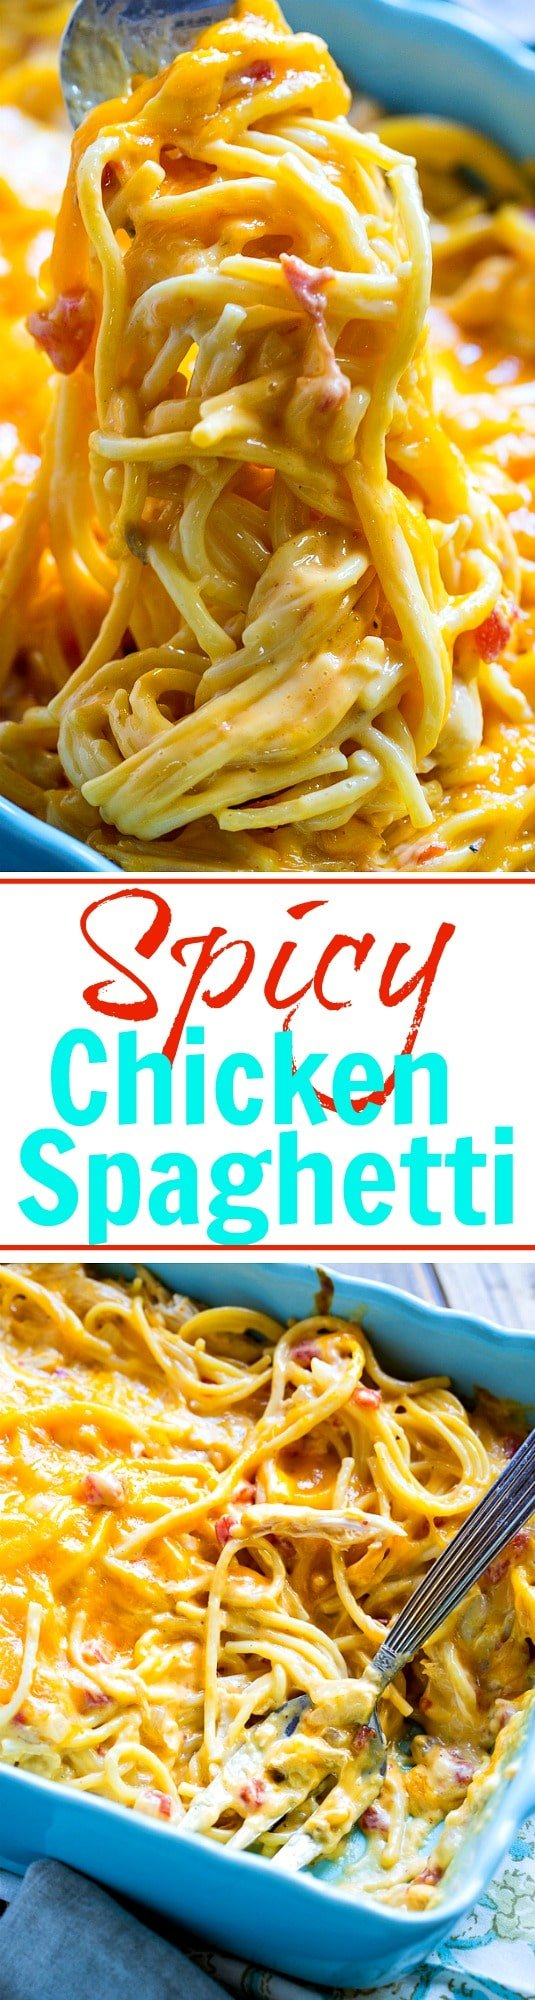 Spicy Chicken Spaghetti- cheesy, creamy comfort food!